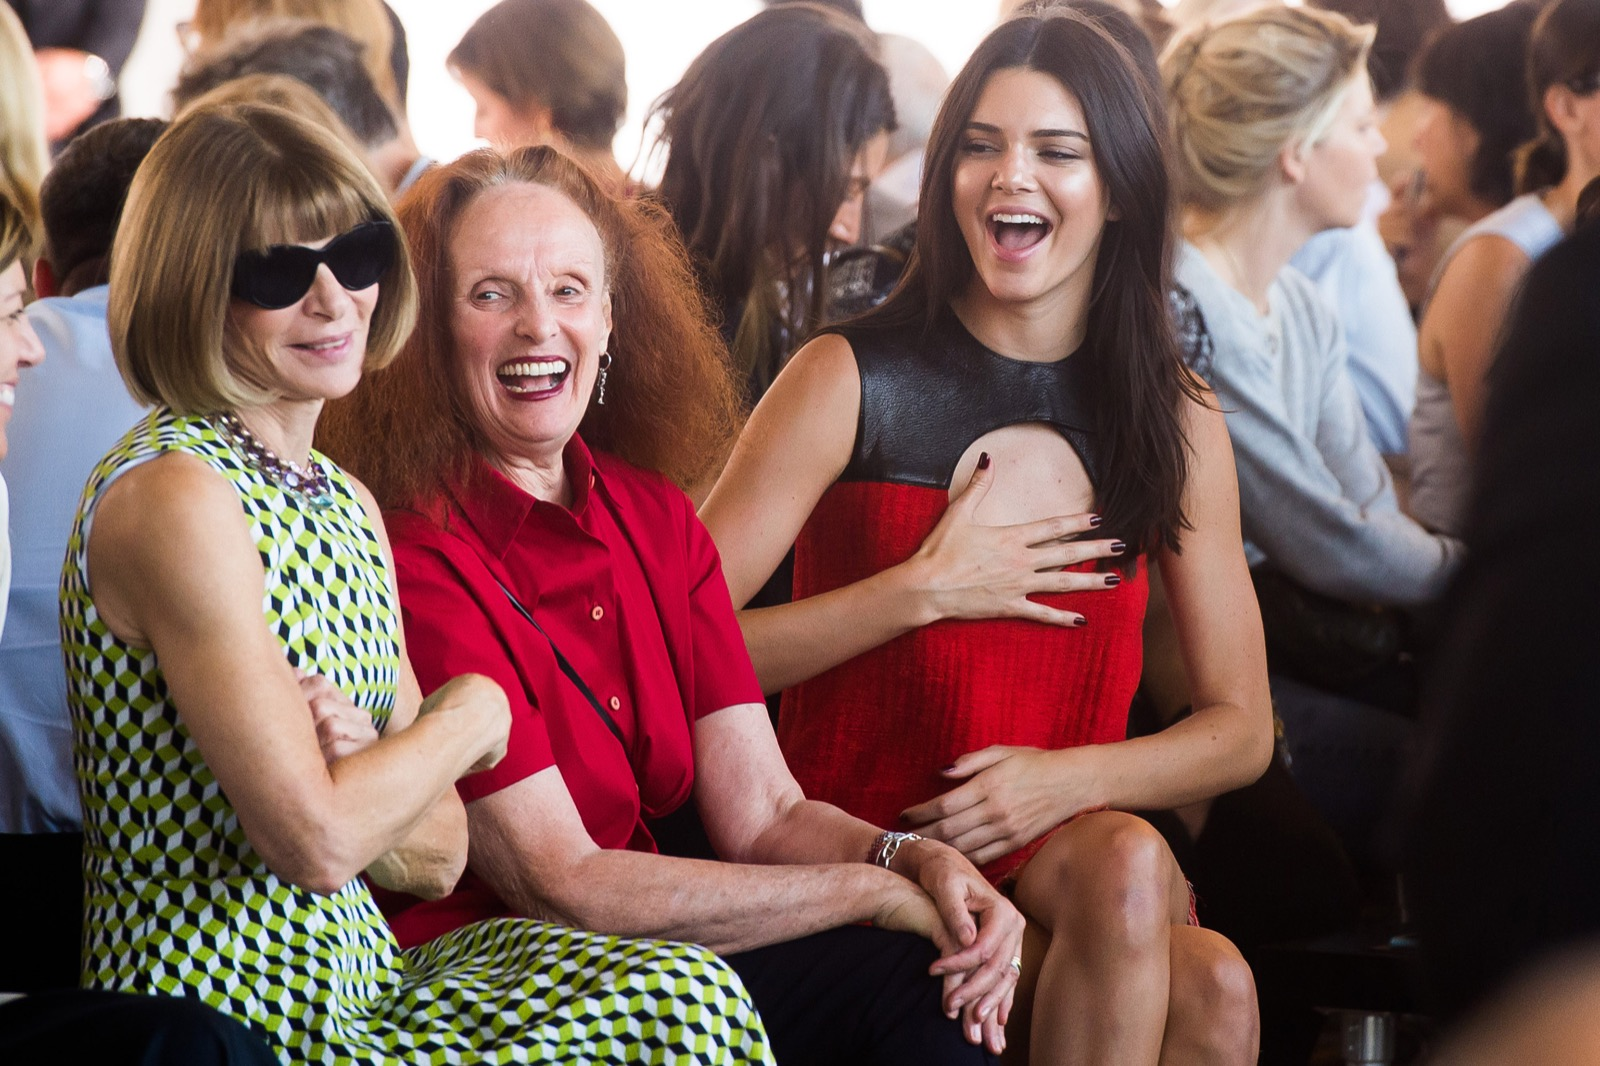 Anna Wintour, Grace Coddington and Kendall Jenner share a light moment while attending the Calvin Klein Spring/Summer 2016 show. Charles Sykes/Invision/AP